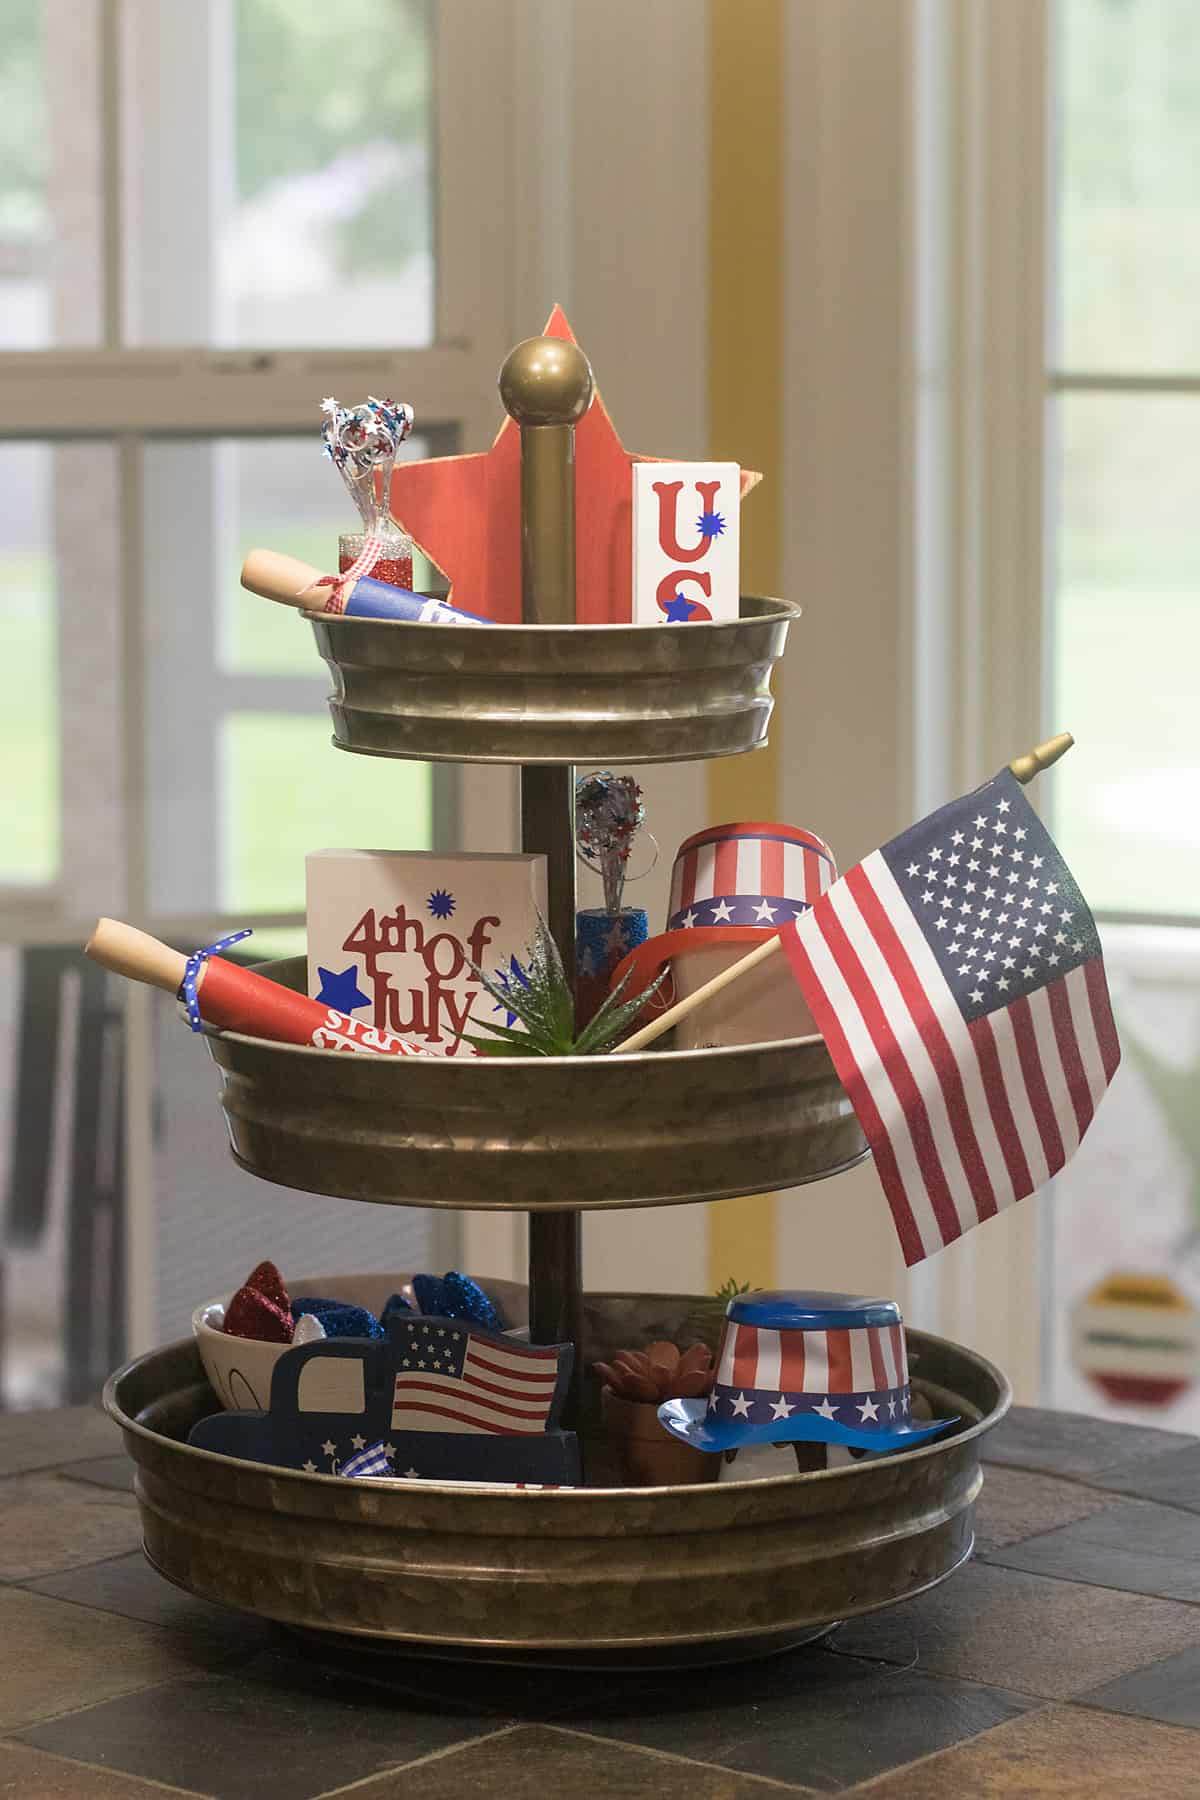 Fourth of July tiered tray